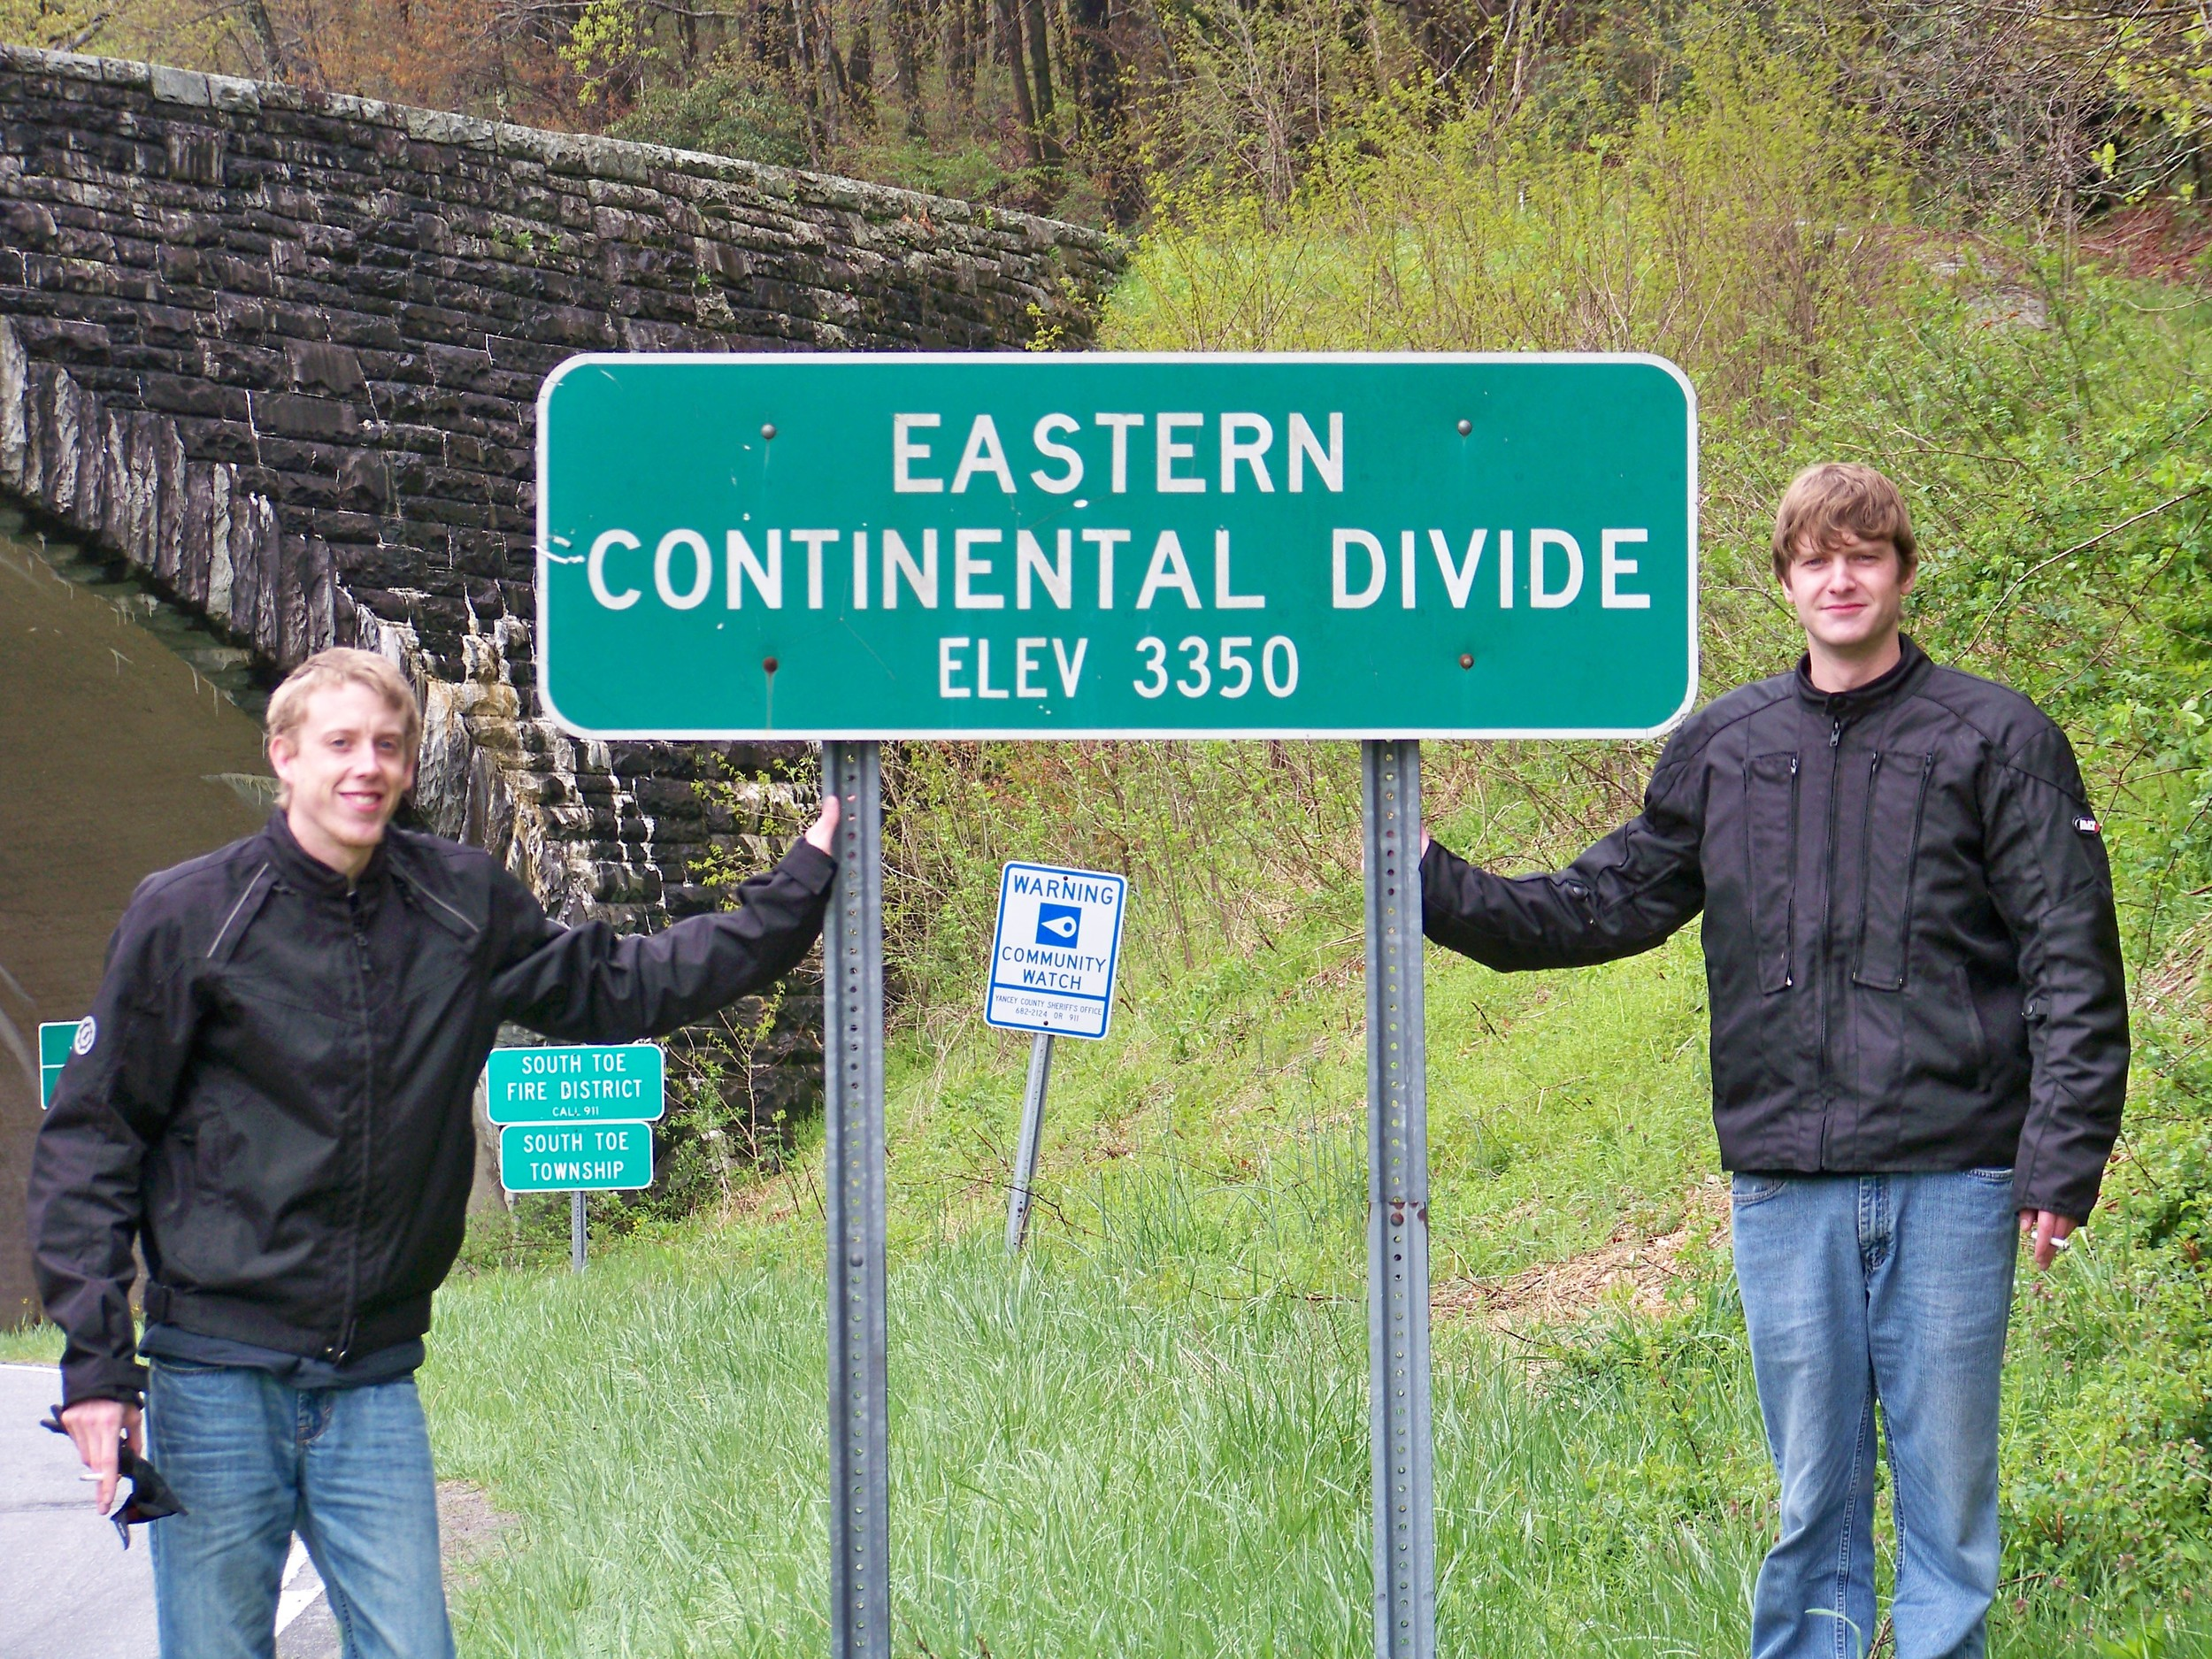 Jimmy and David at the Eastern Continental Divide